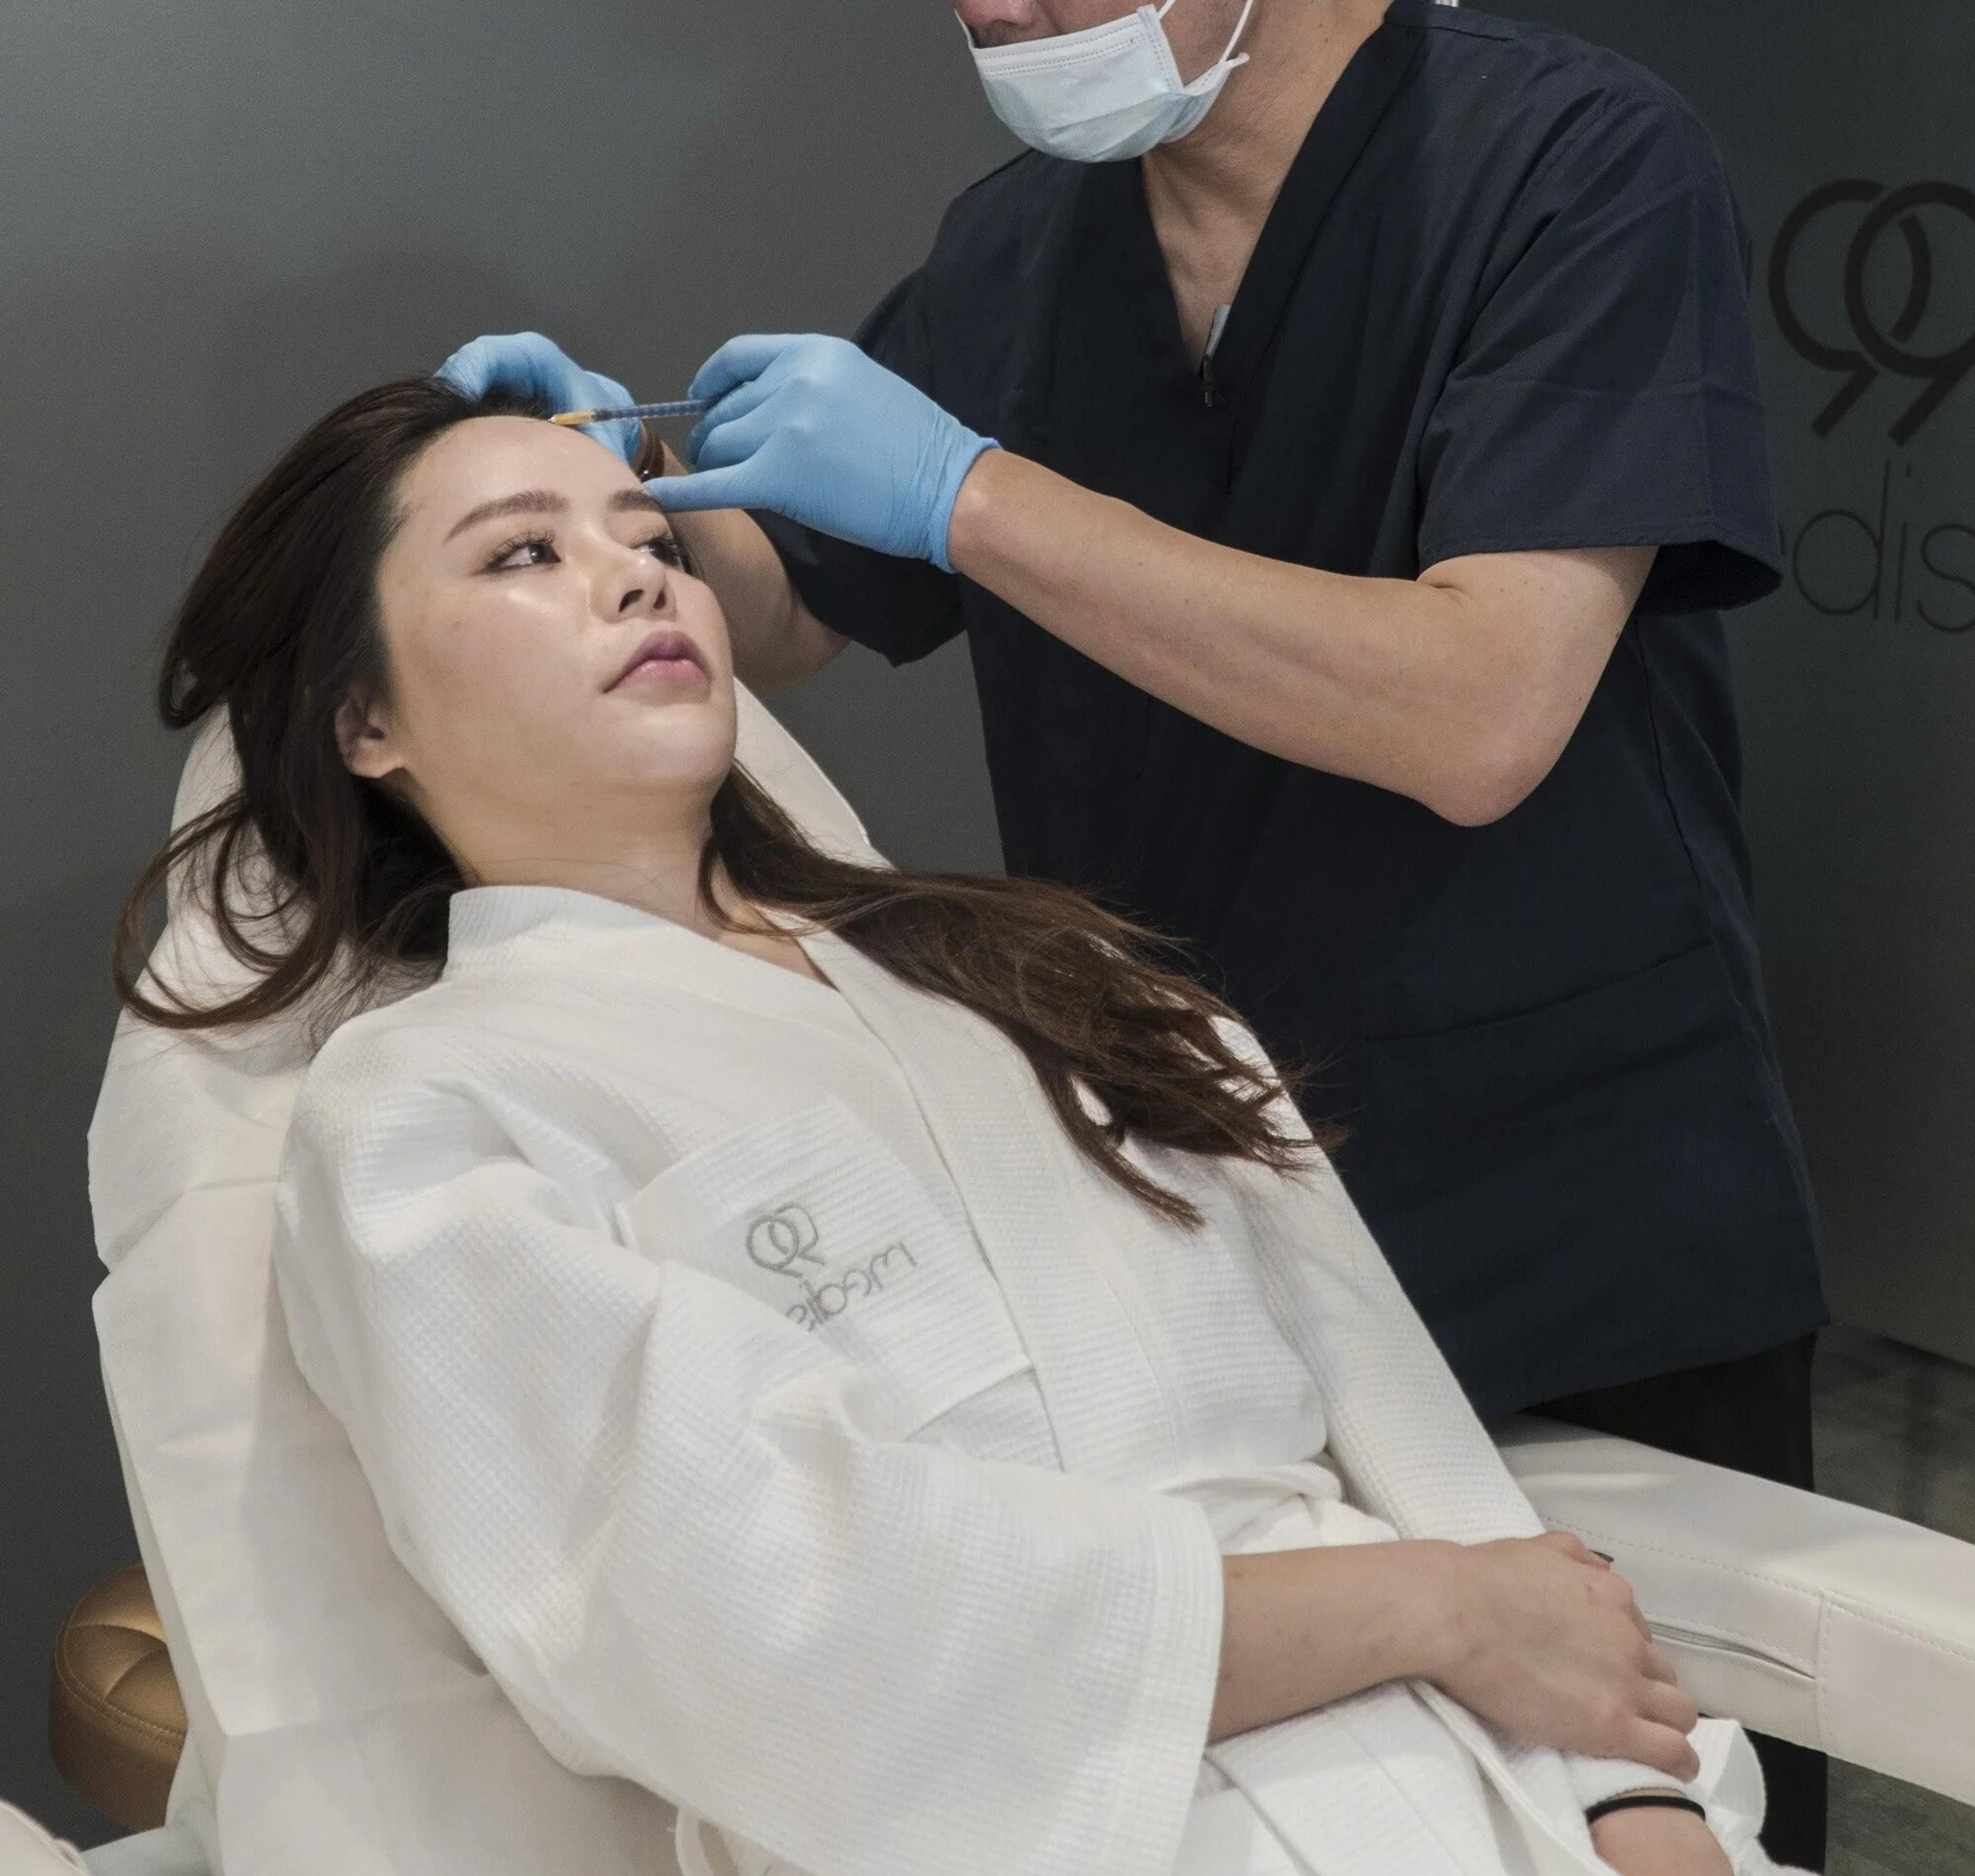 99 Medispa client receiving cosmetic injection treatment